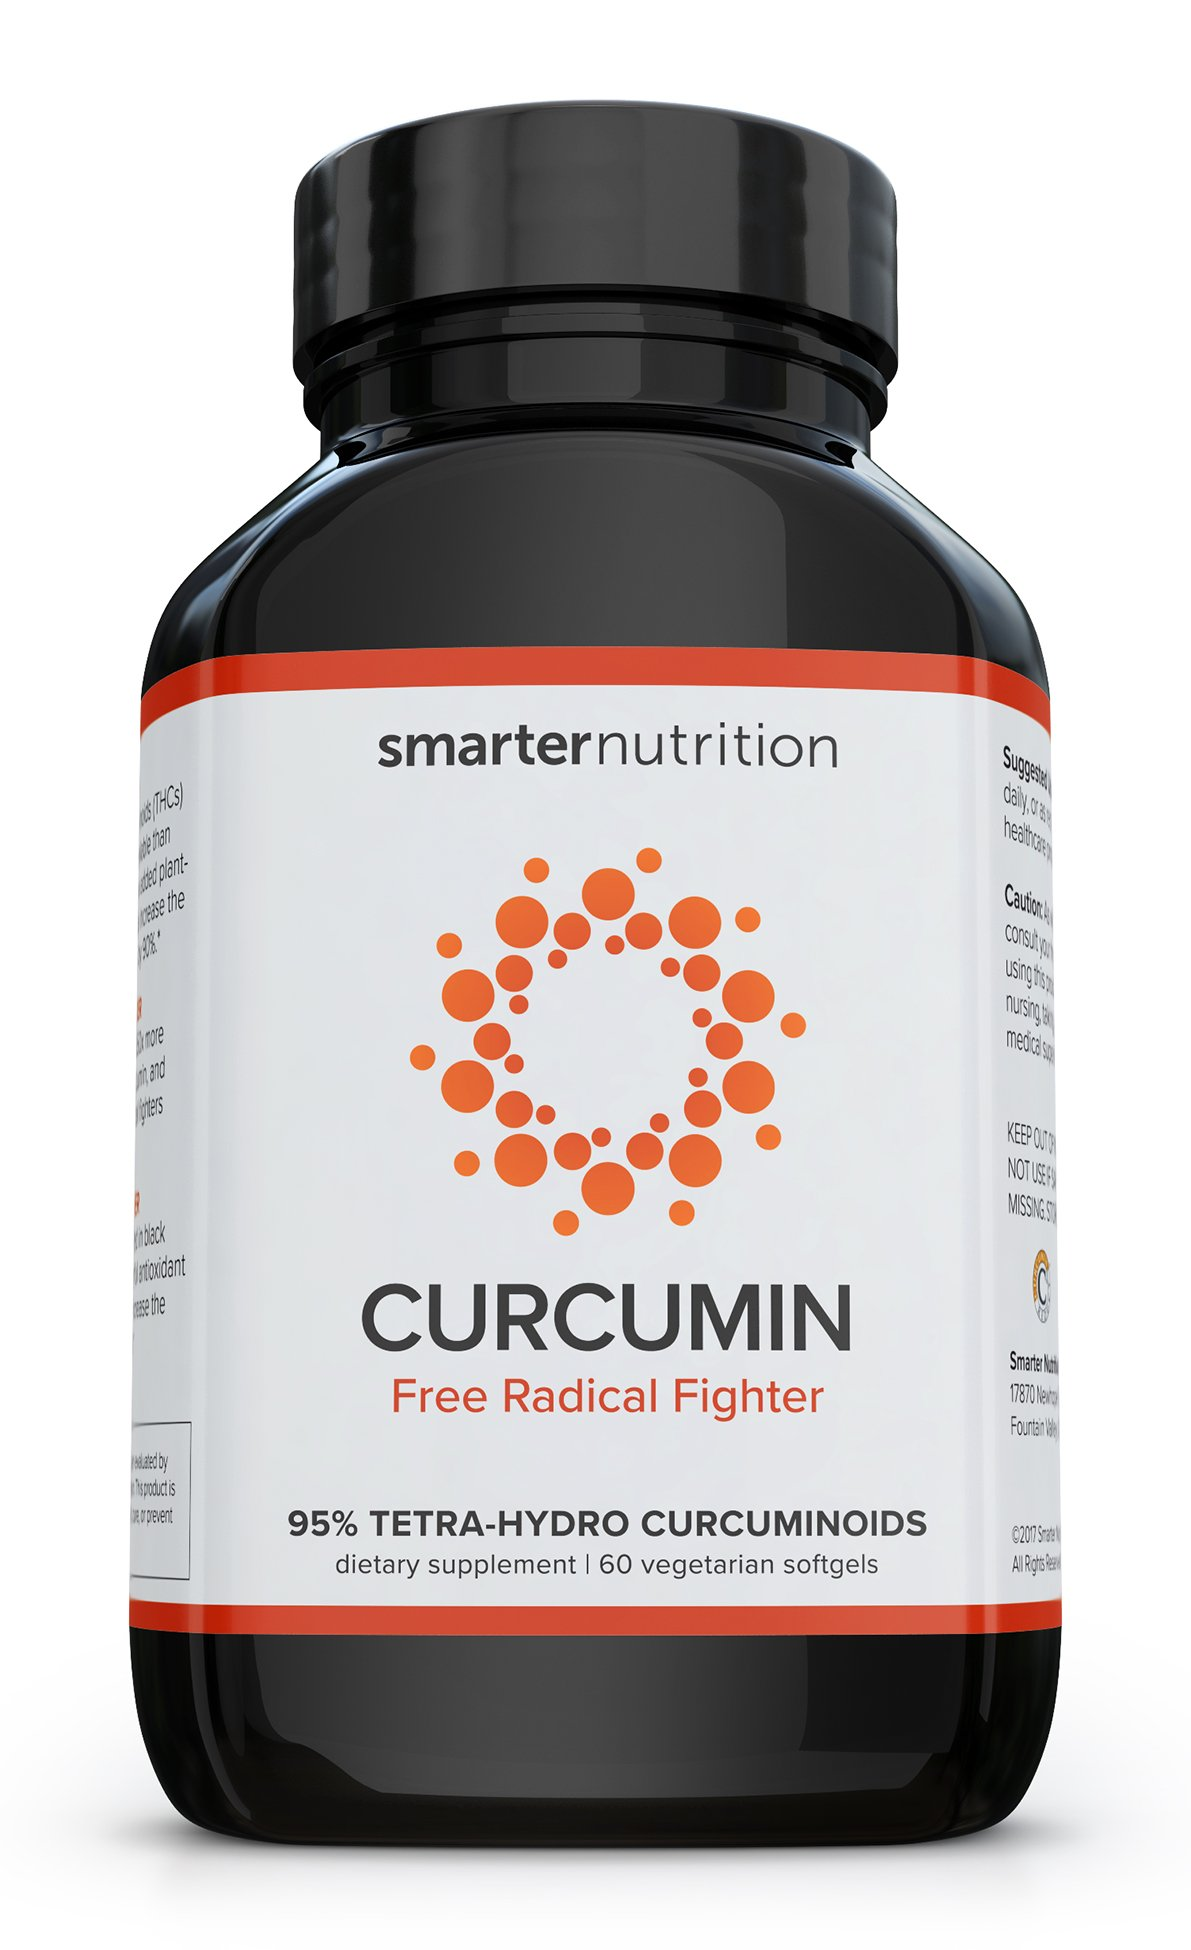 Smarter Turmeric Curcumin - Potency and Absorption in a SoftGel | The Most Active Form of Curcuminoid Found in the Turmeric Root | 95% Tetra-Hydro Curcuminoids (60 Count - 1 Month Supply) by SMARTERNUTRITION